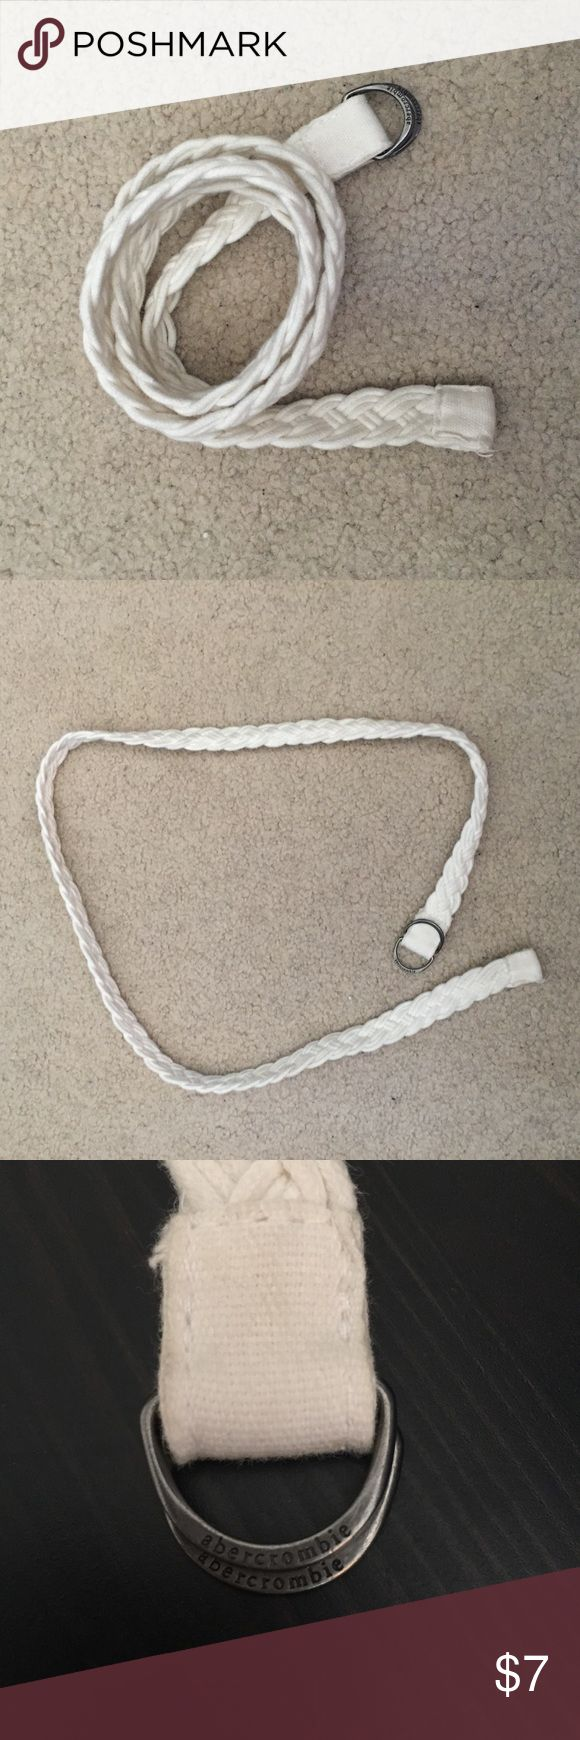 Abercrombie White Braided Belt White braided belt. Super cute and goes with any bottoms. There is slight dark color transfer on the inside of the belt due to wearing with darker bottoms but it cannot be seen while wearing. This item has been barely worn and is in great condition. Abercrombie & Fitch Accessories Belts